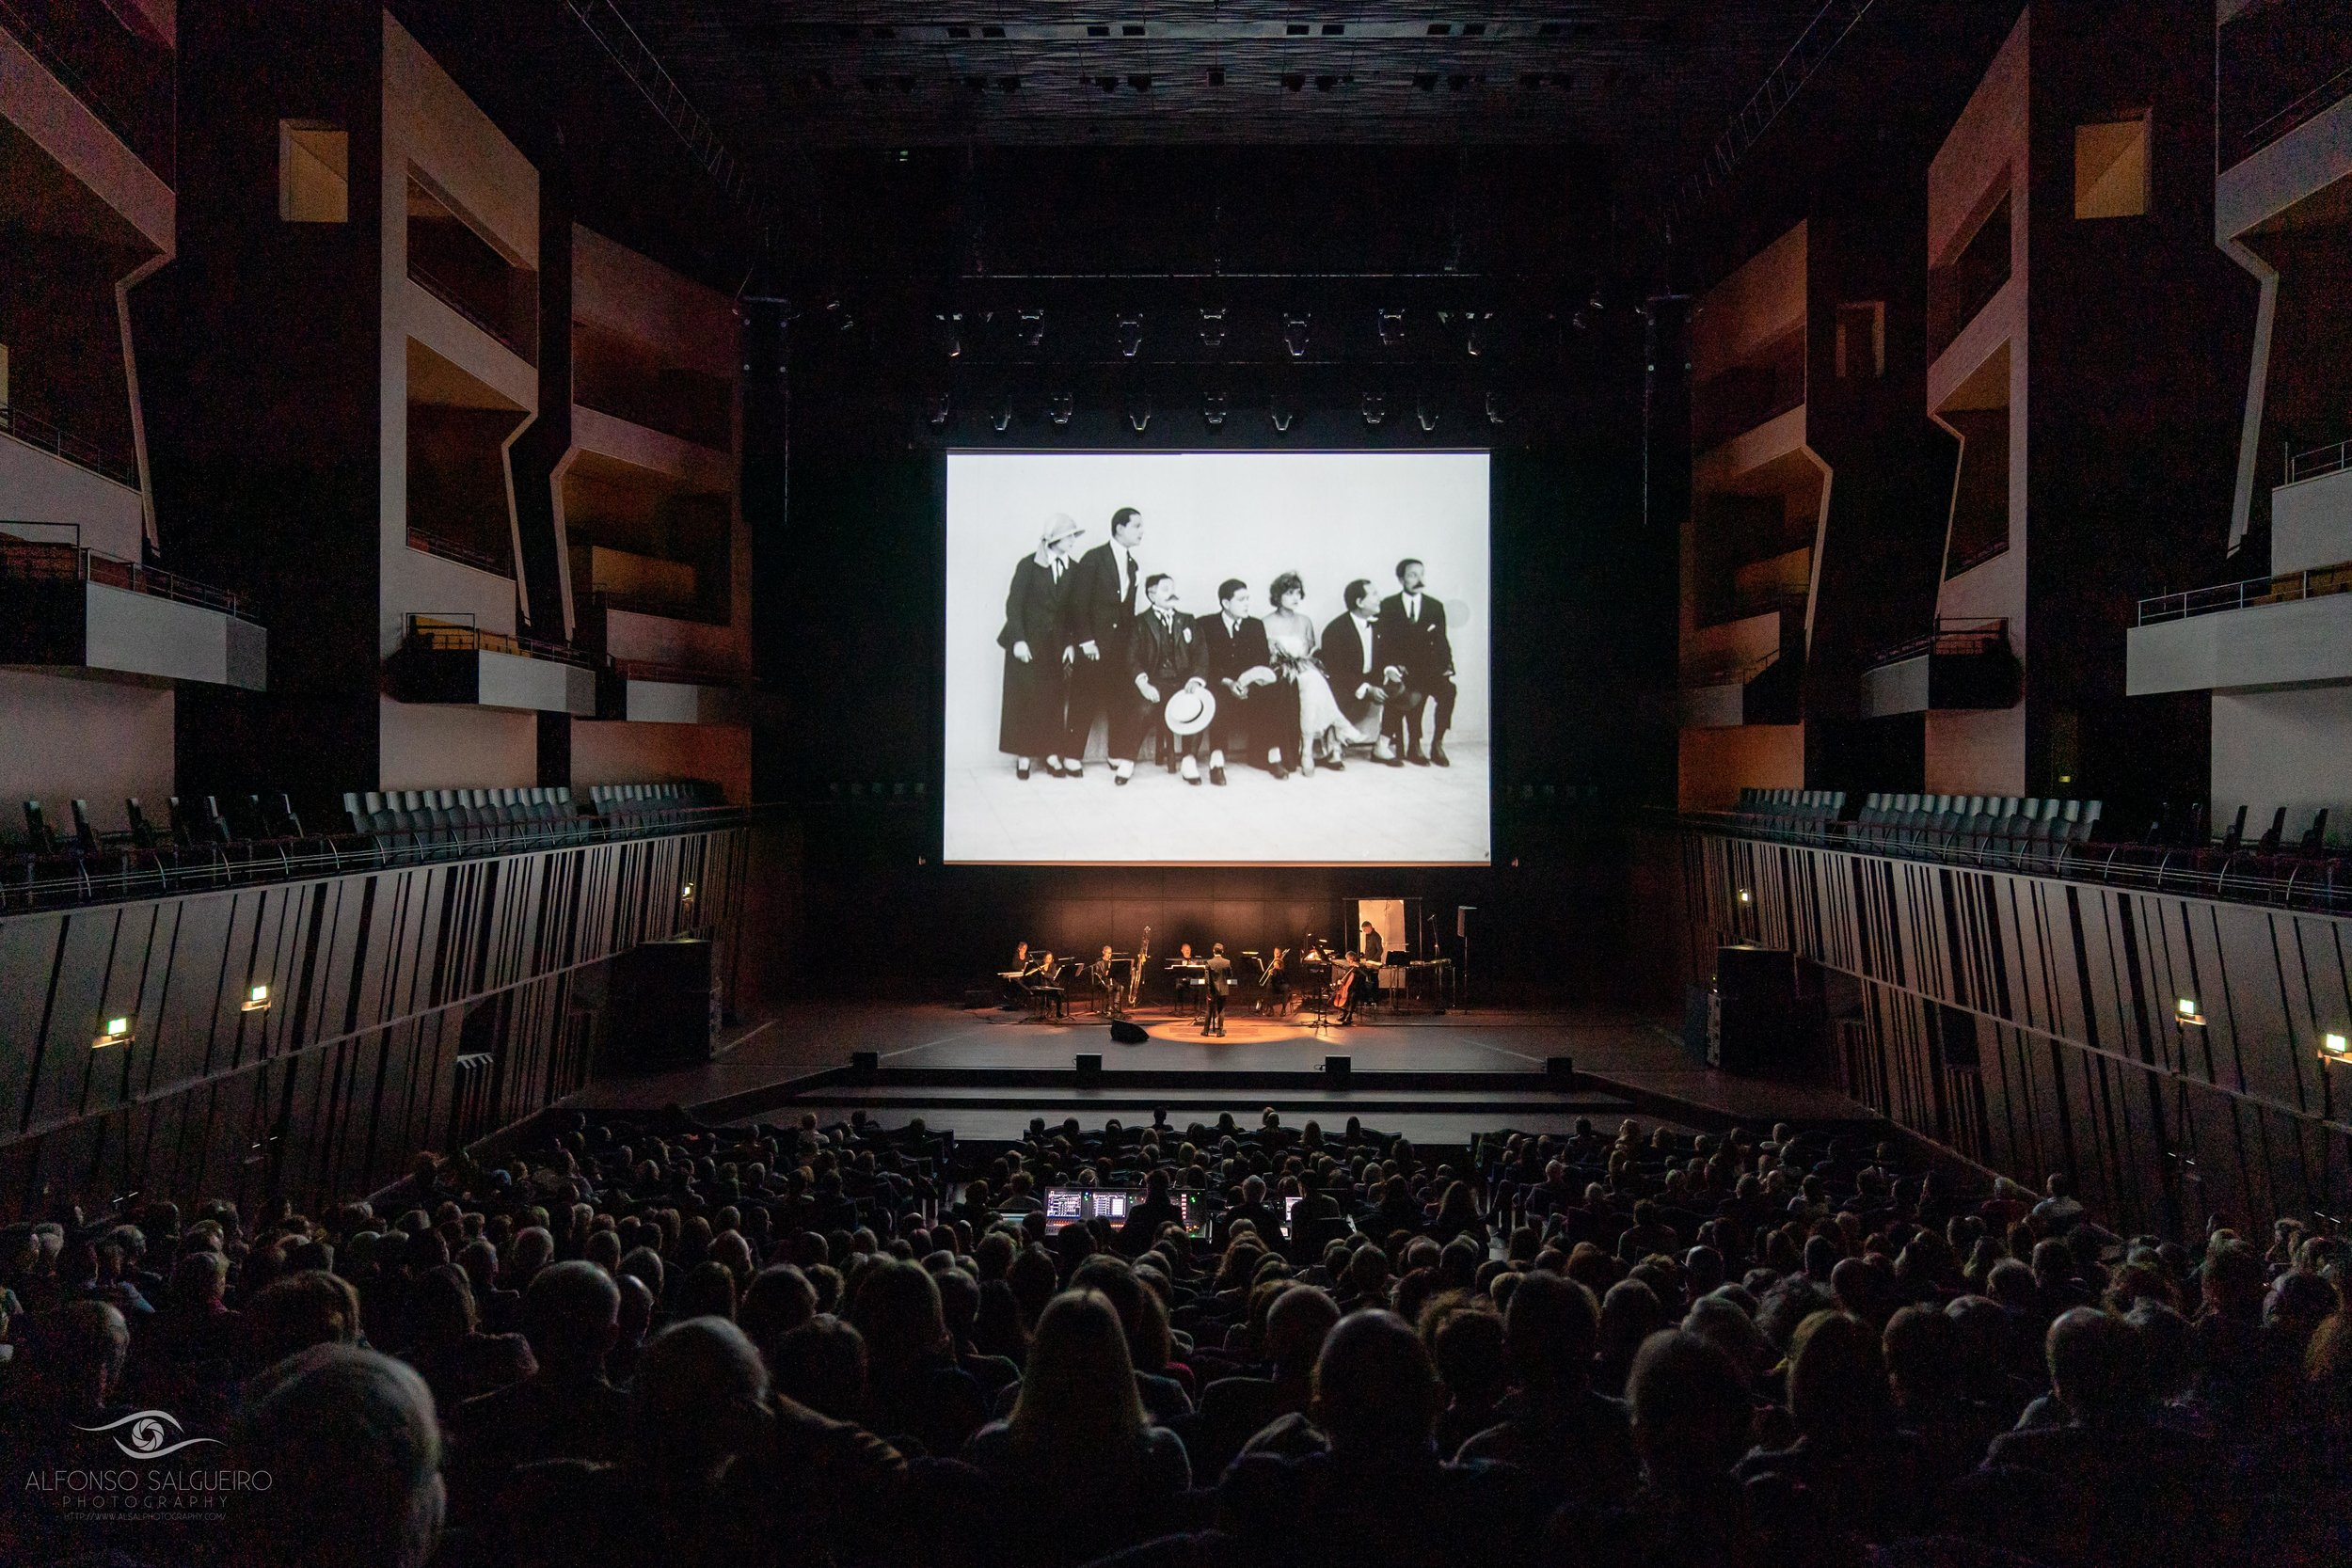 Philharmonie 18-19 season in images_-52.jpg